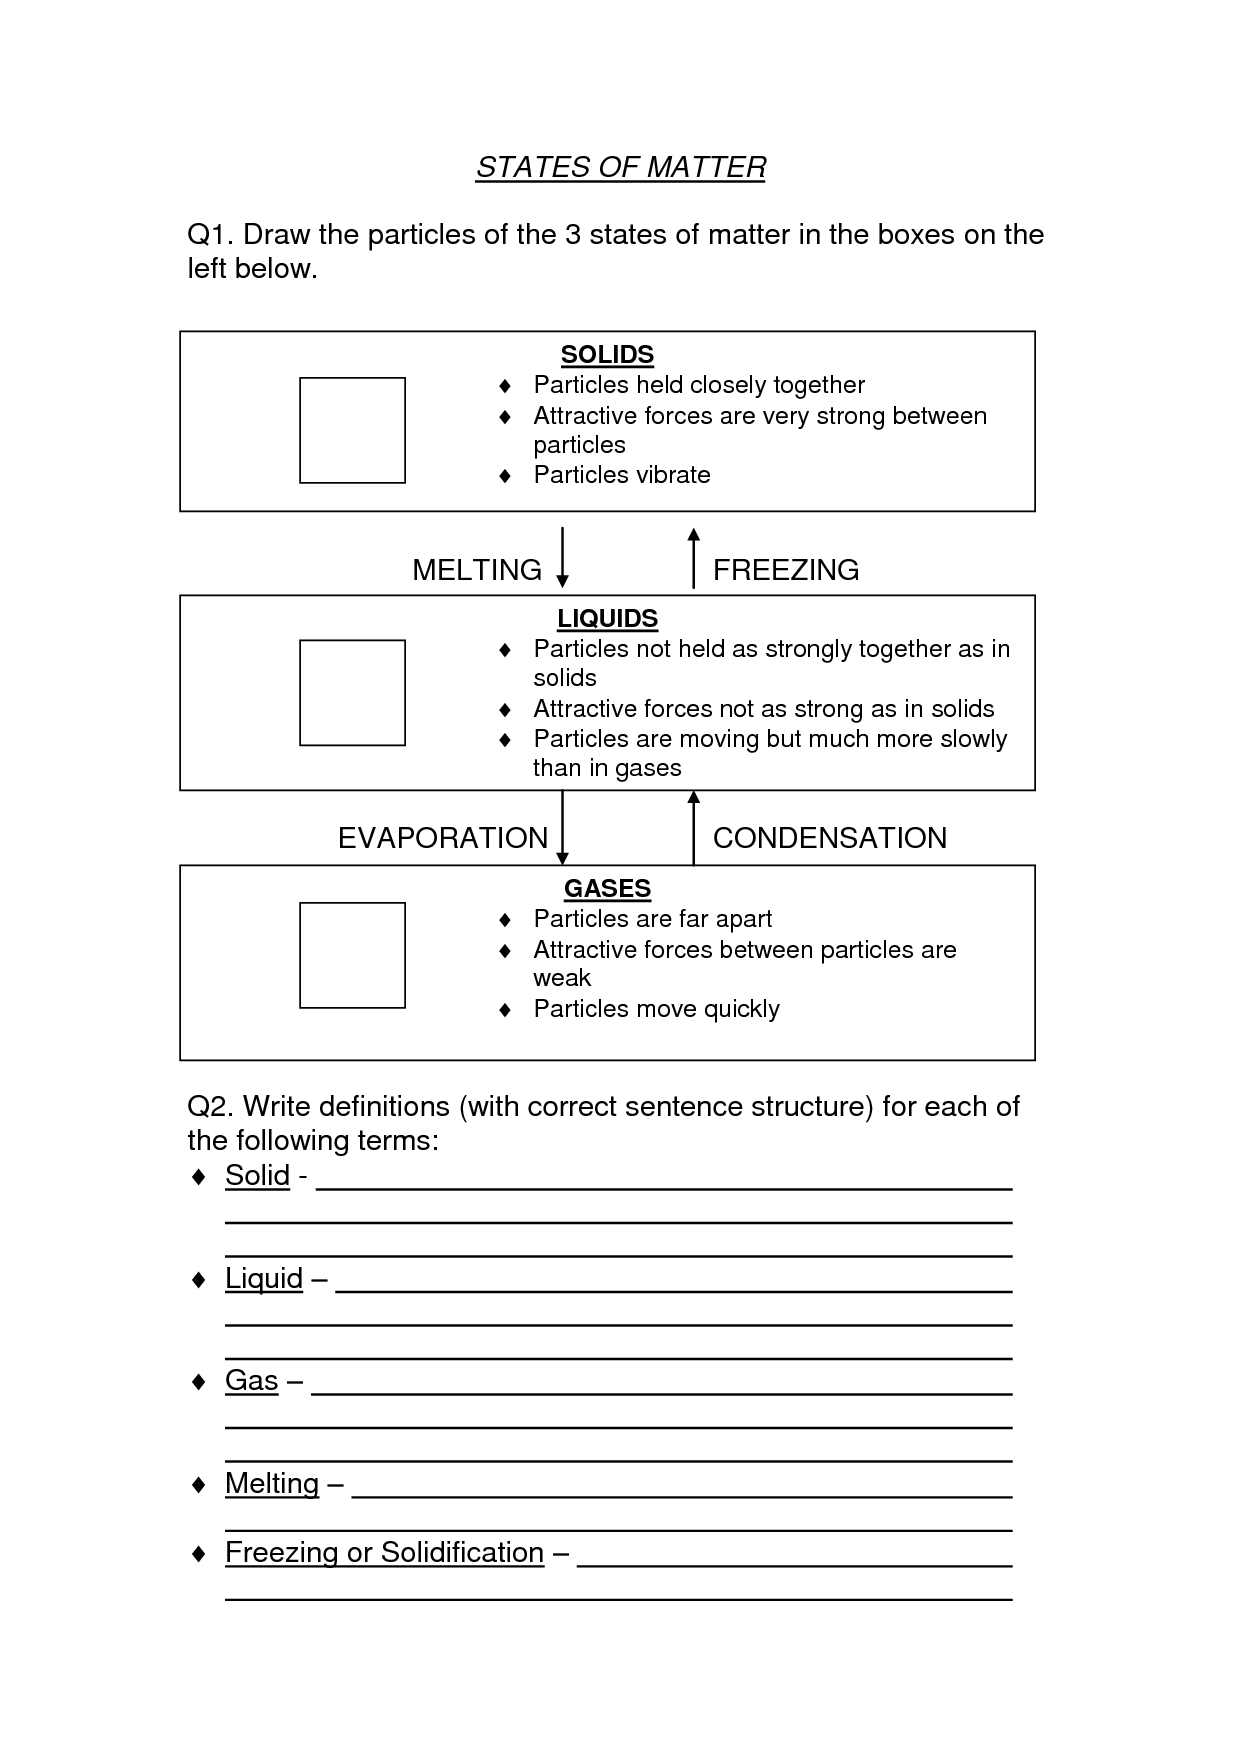 medium resolution of worksheets on states of matter for high school - Google Search   Science  worksheets